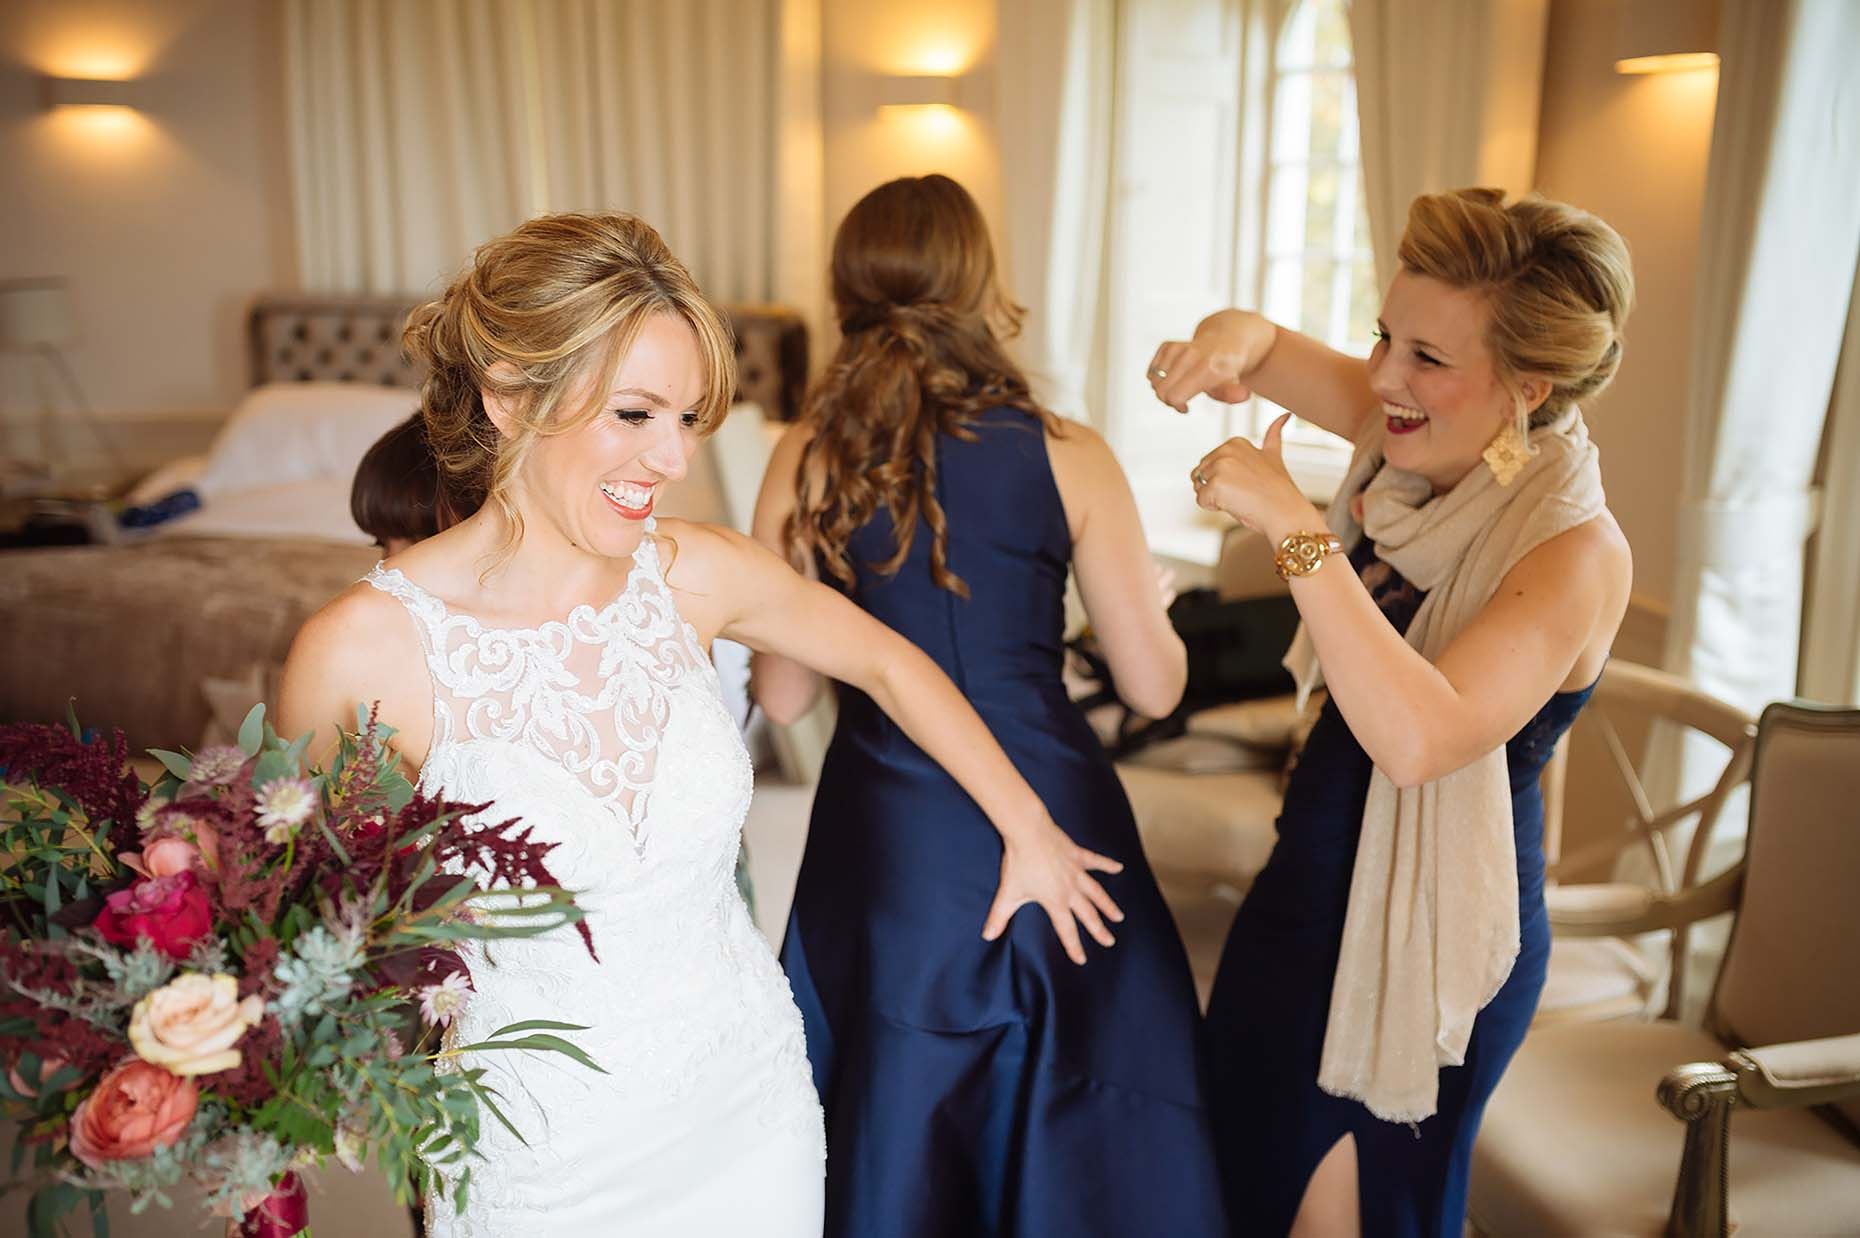 emotions-happy-bride-fun-with-bridesmaids-wedding-32